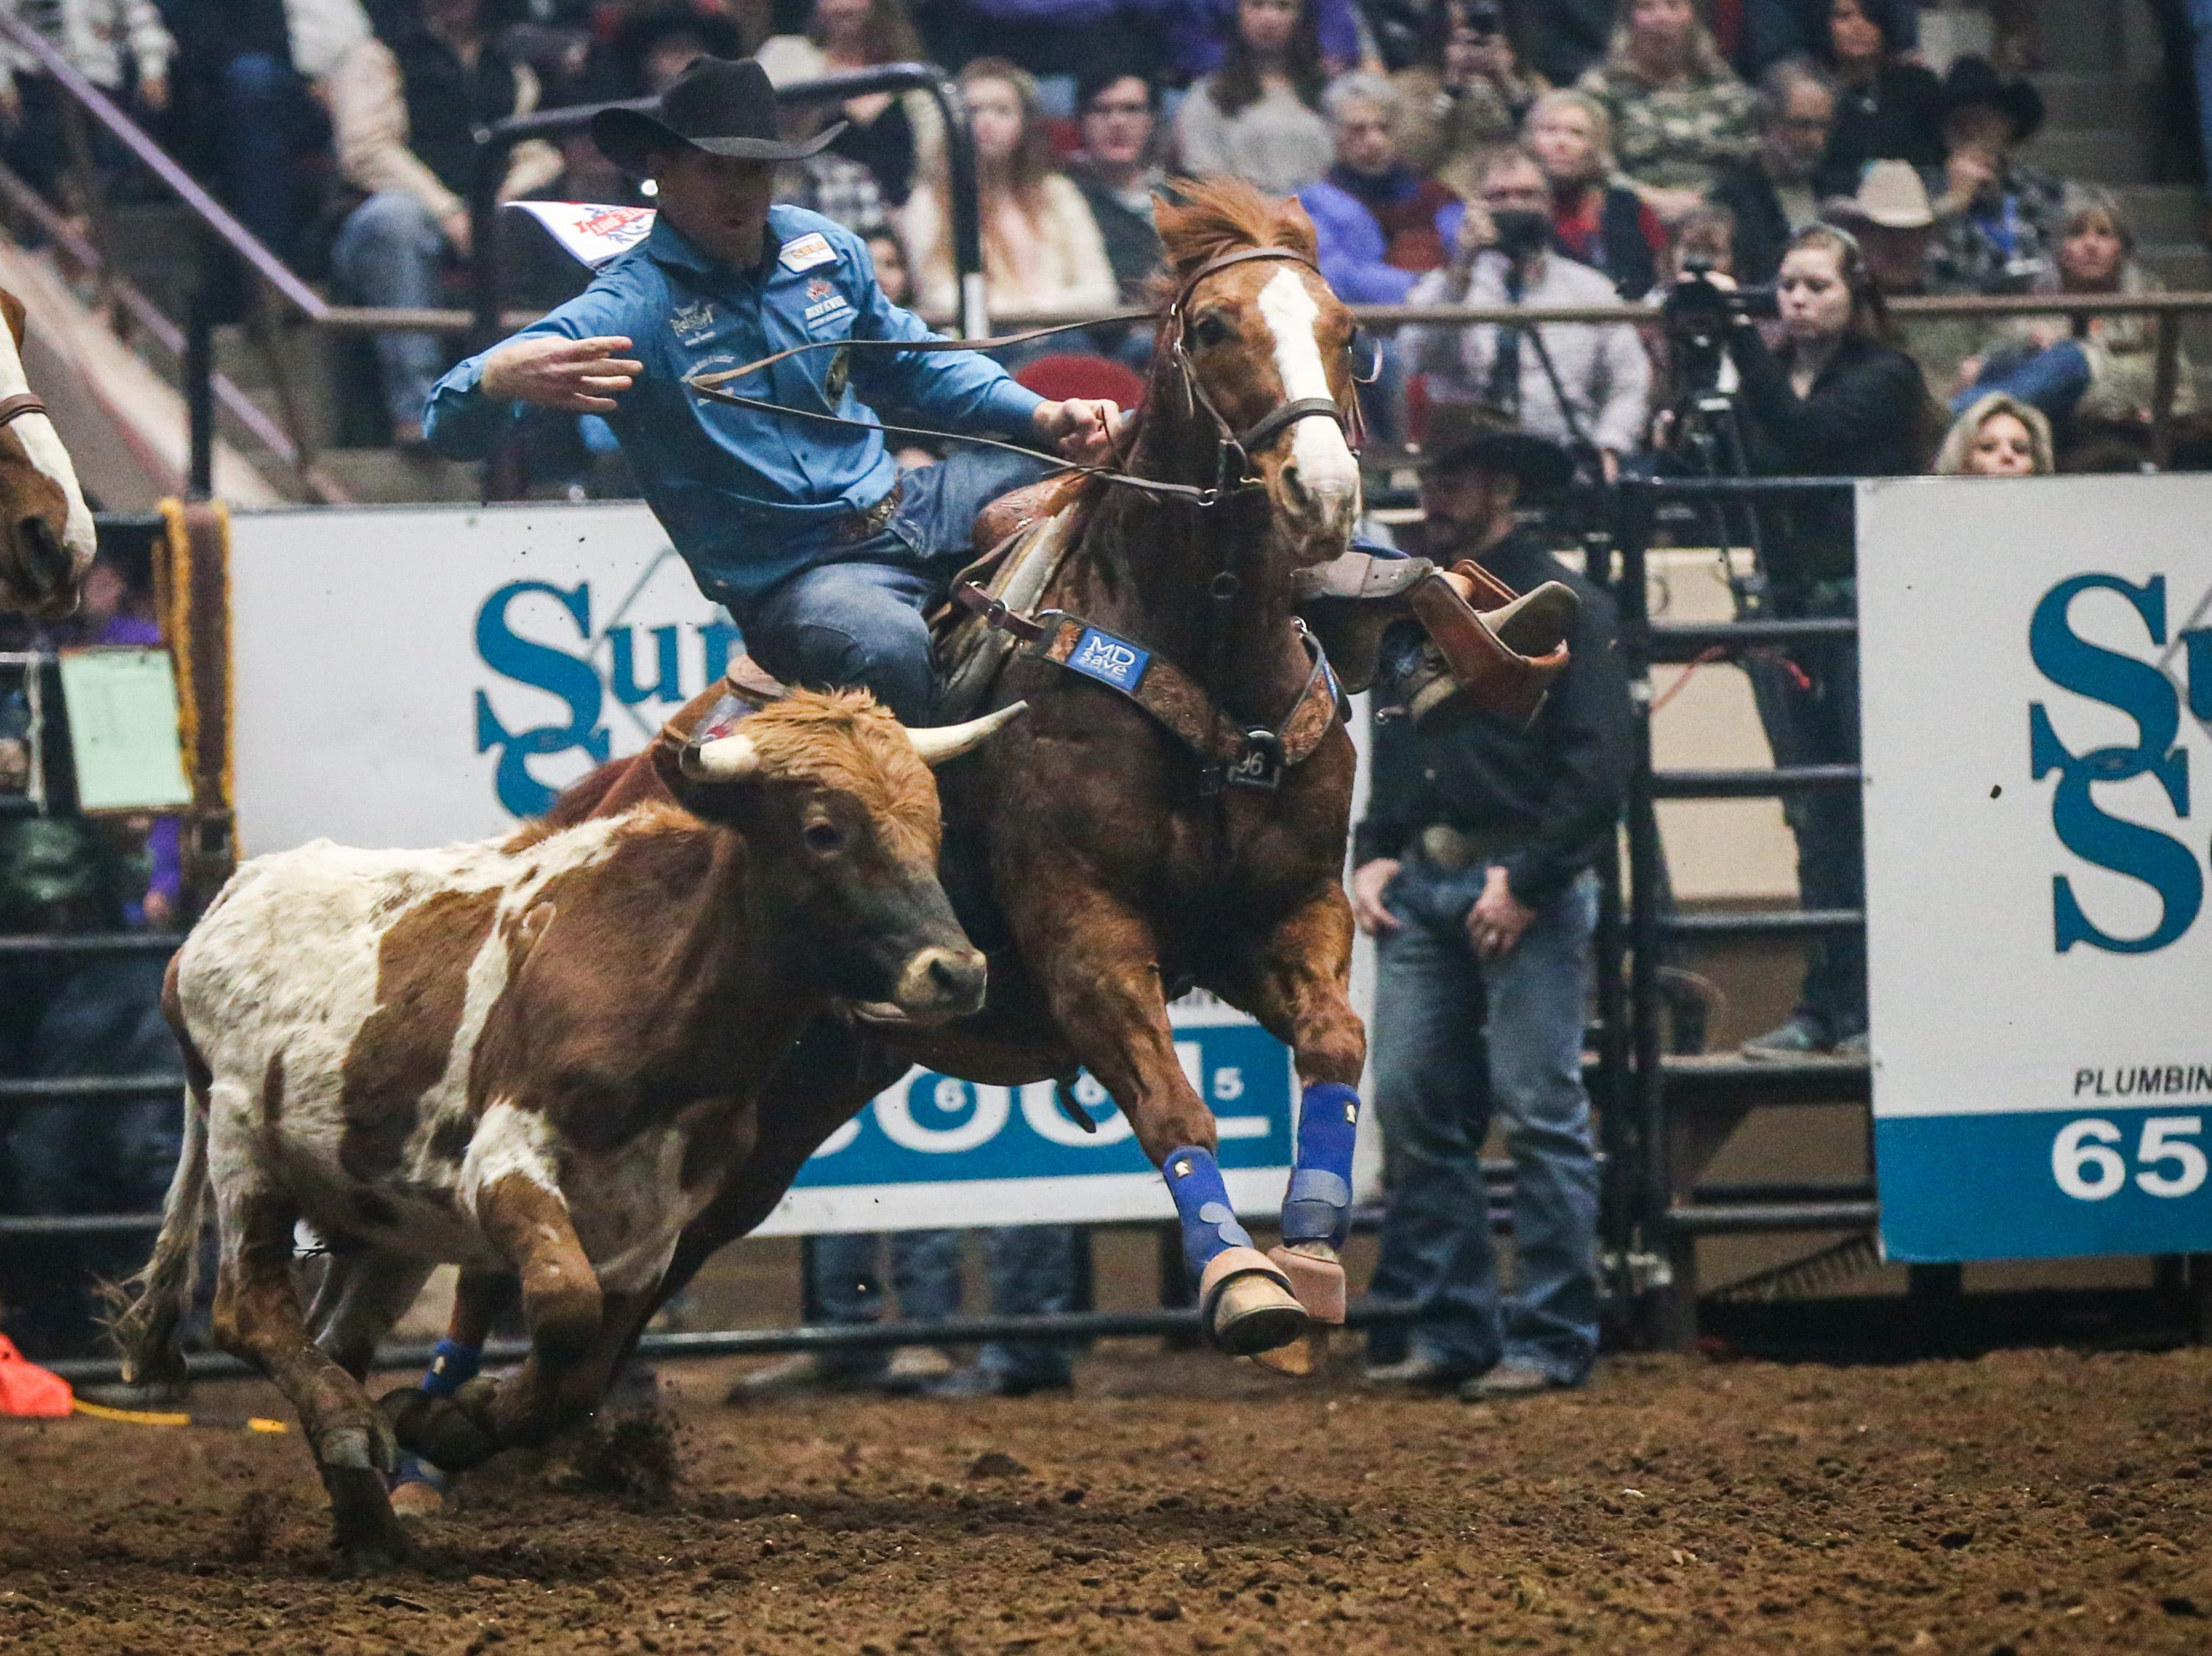 Blake Mindemann rides out to steer wrestle during Cinch Chute Out Saturday, Feb. 16, 2019, at Foster Communications Coliseum. Mindemann was the steer wrestling champion.